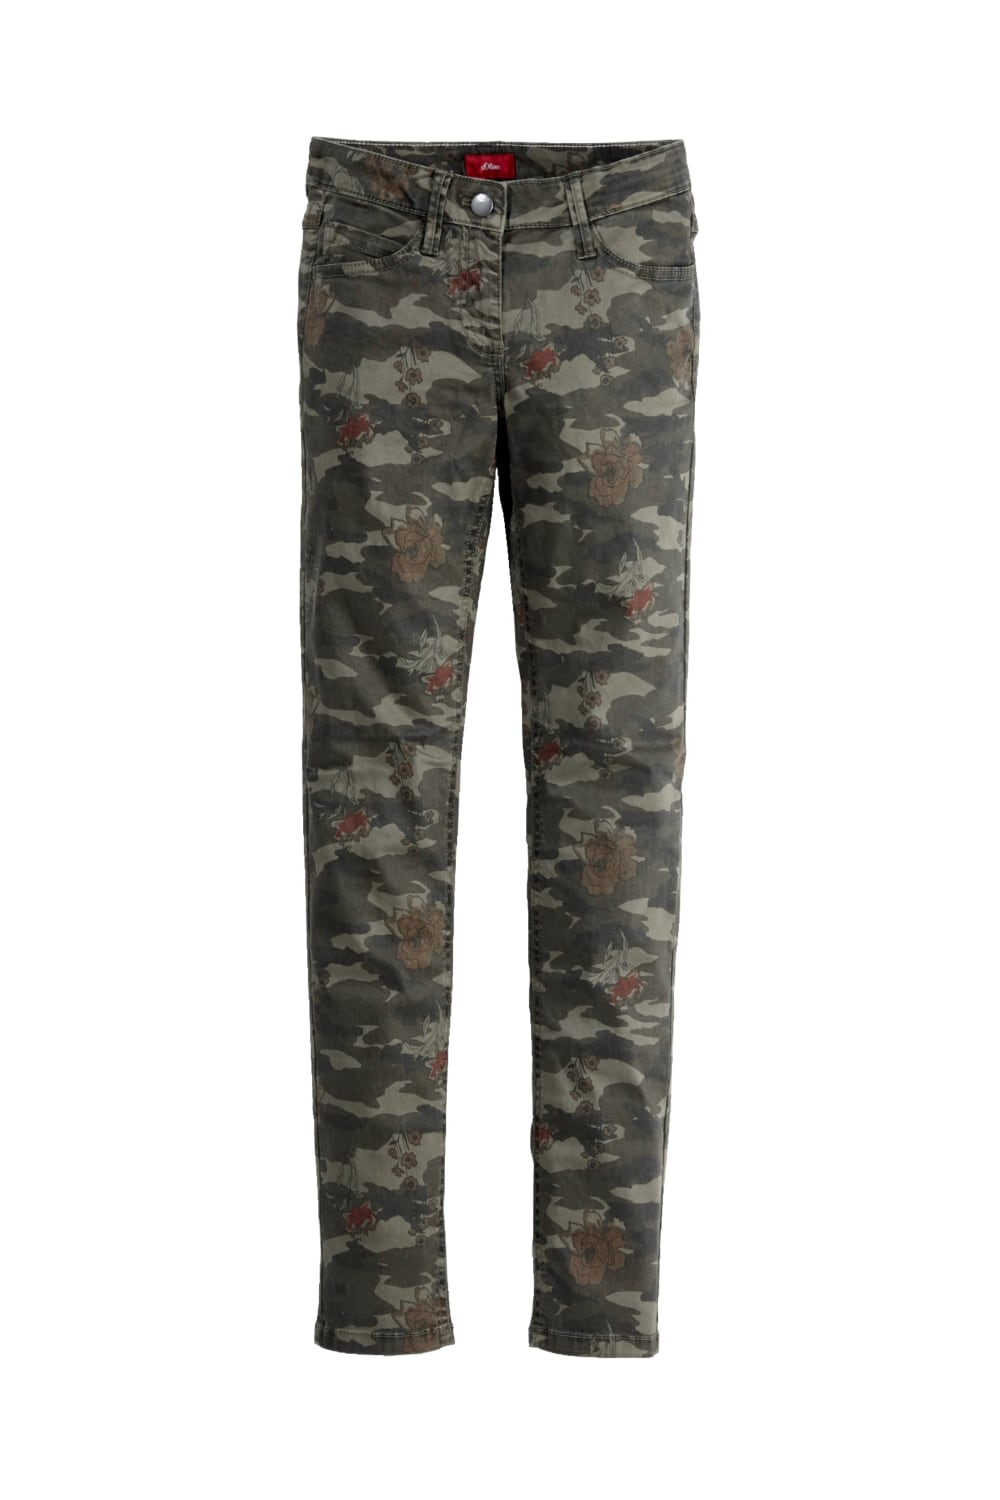 S.OLIVER Skinny Hose mit Camouflage Print bei Peppys in